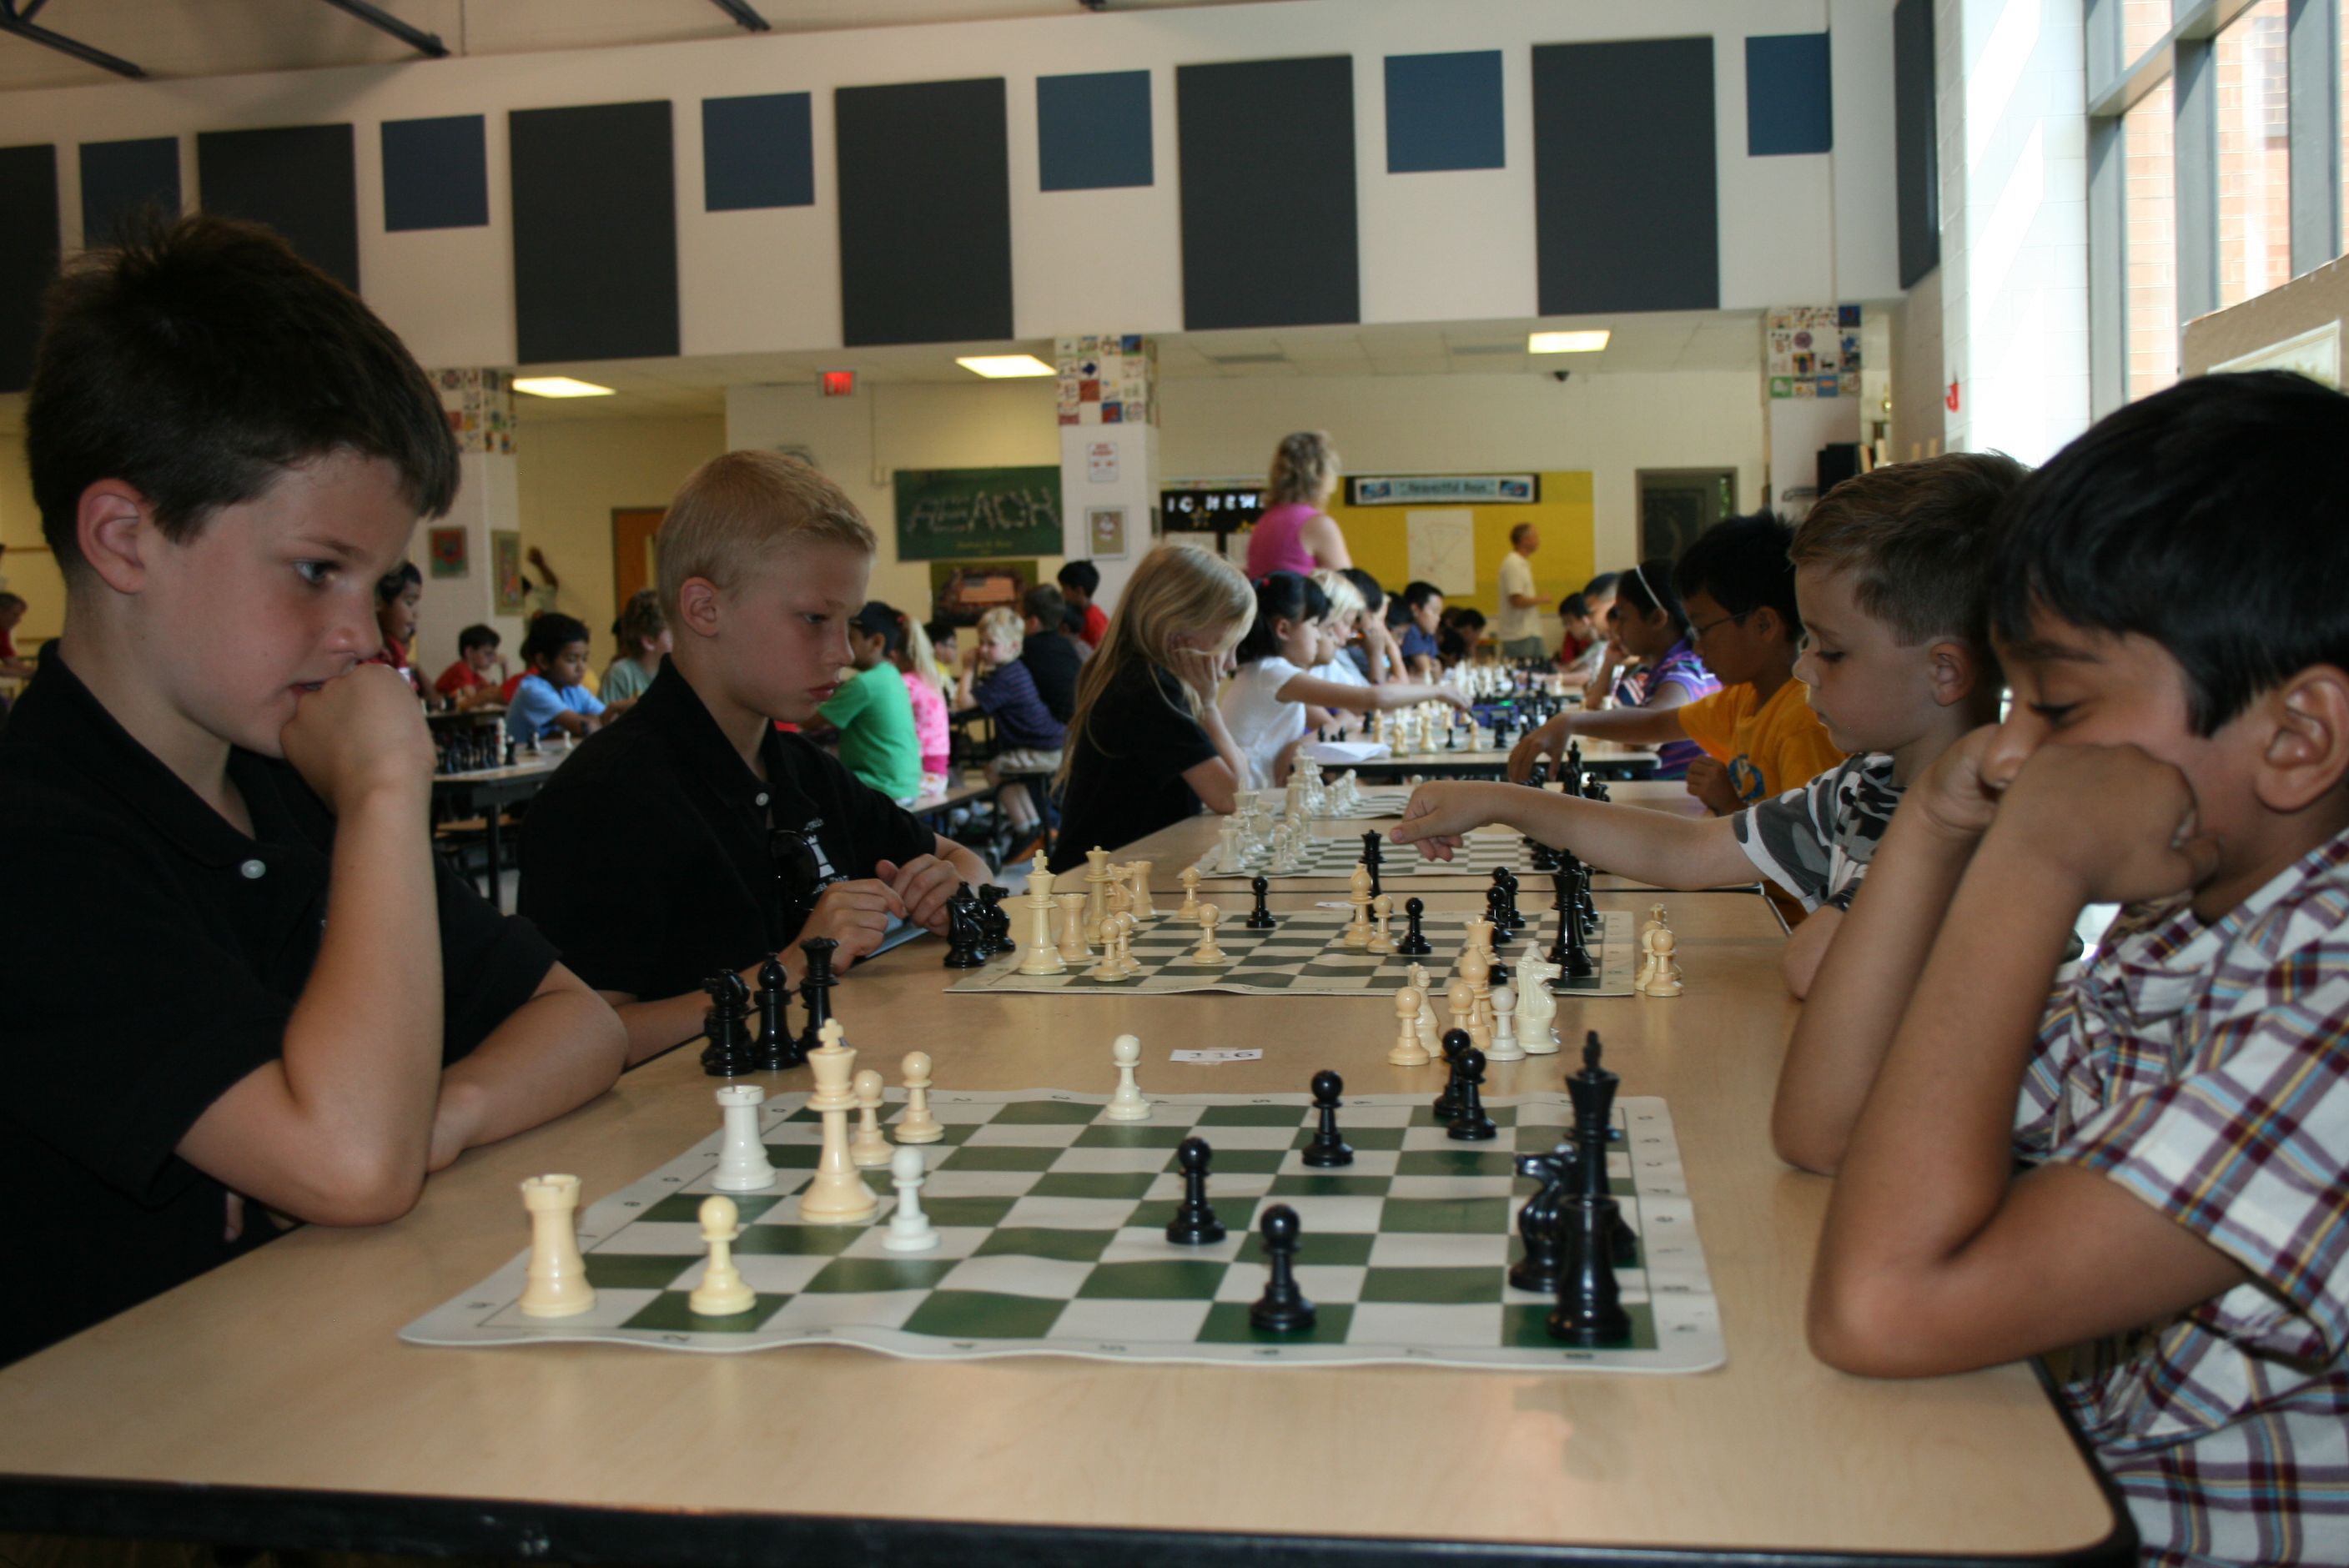 4 player chess tournaments